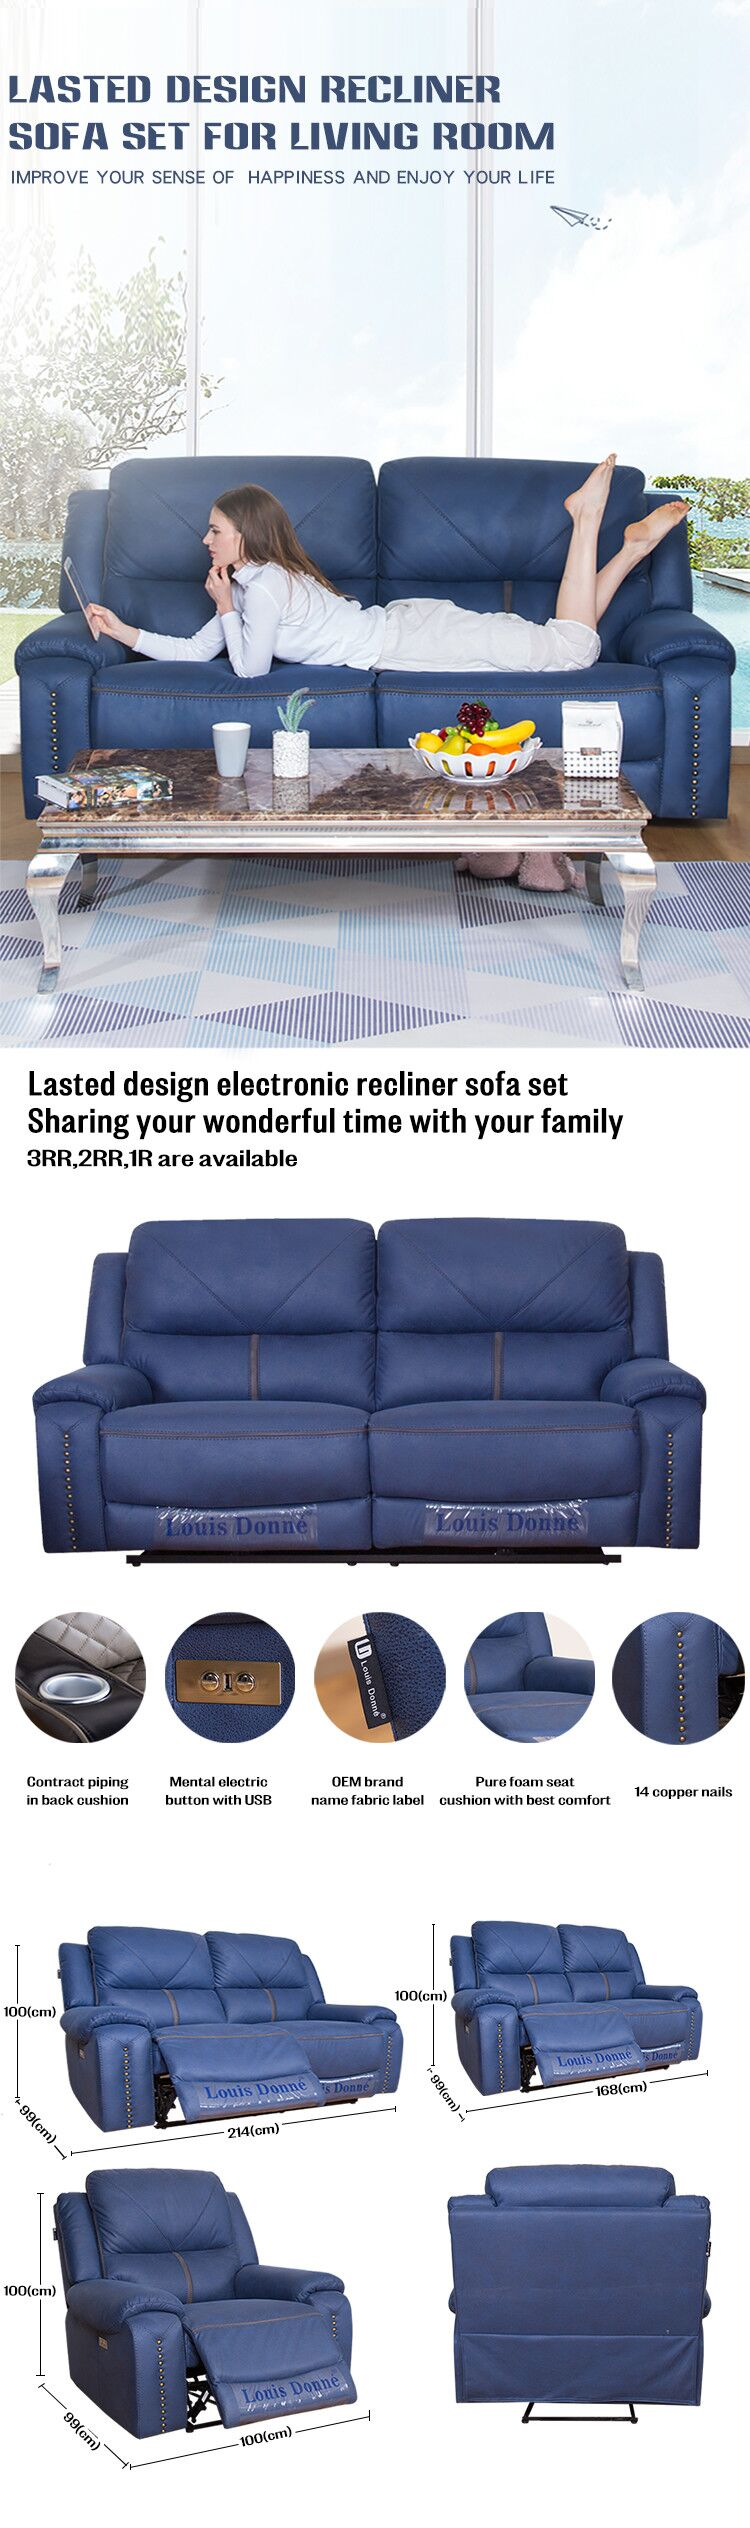 Best Blue Electric Recliner Chair with USB Port - Shenzhen Mebon